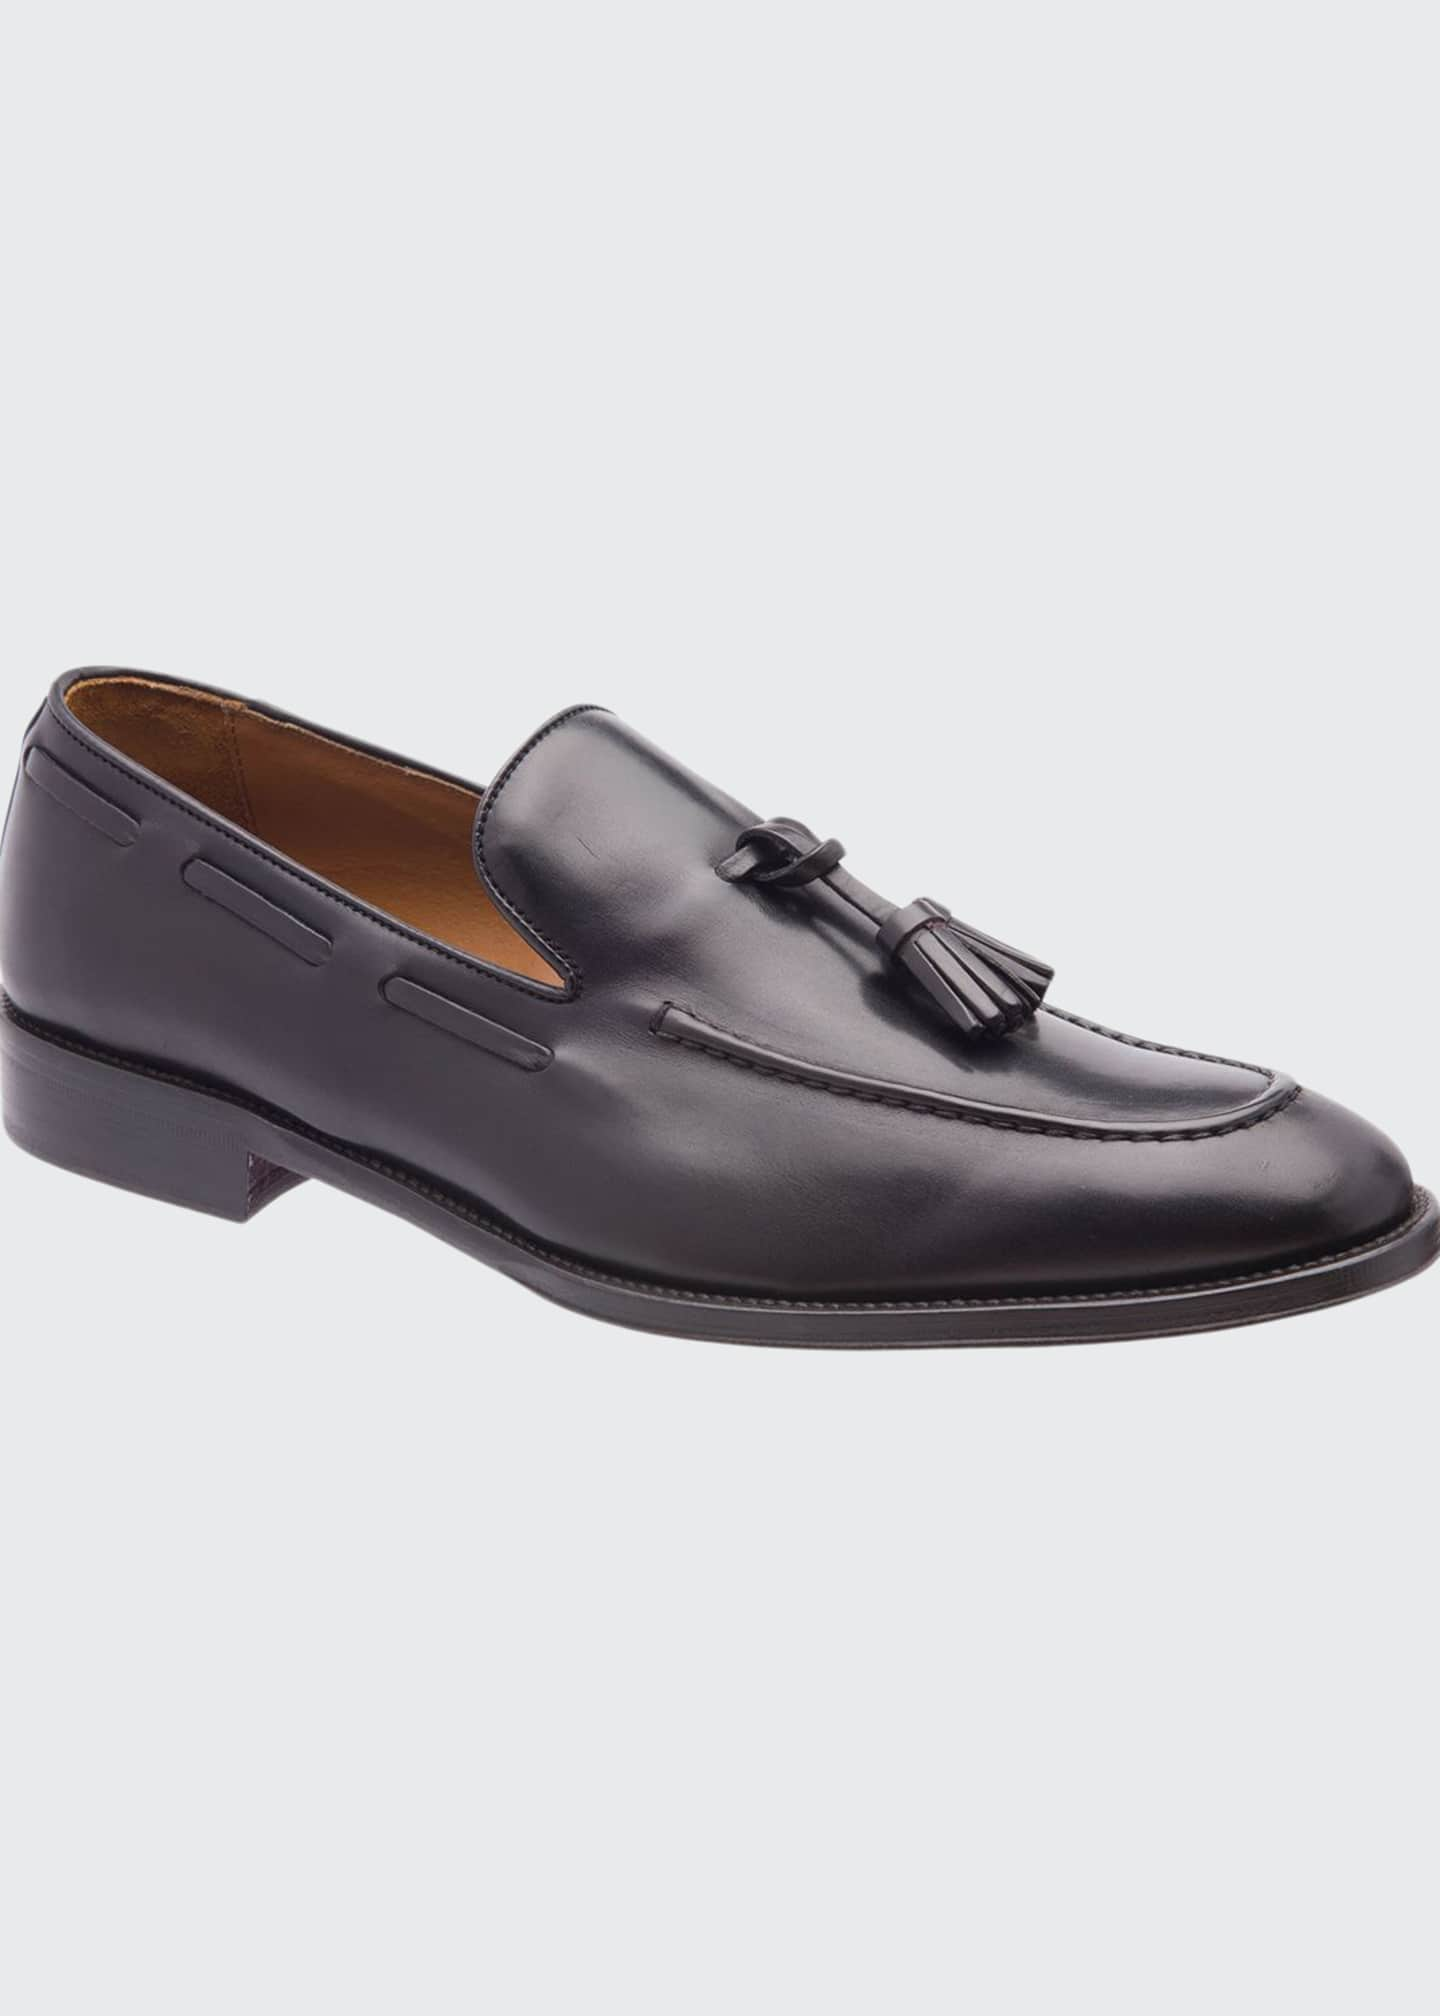 Image 1 of 5: Men's Alfio Leather Tassel Loafers